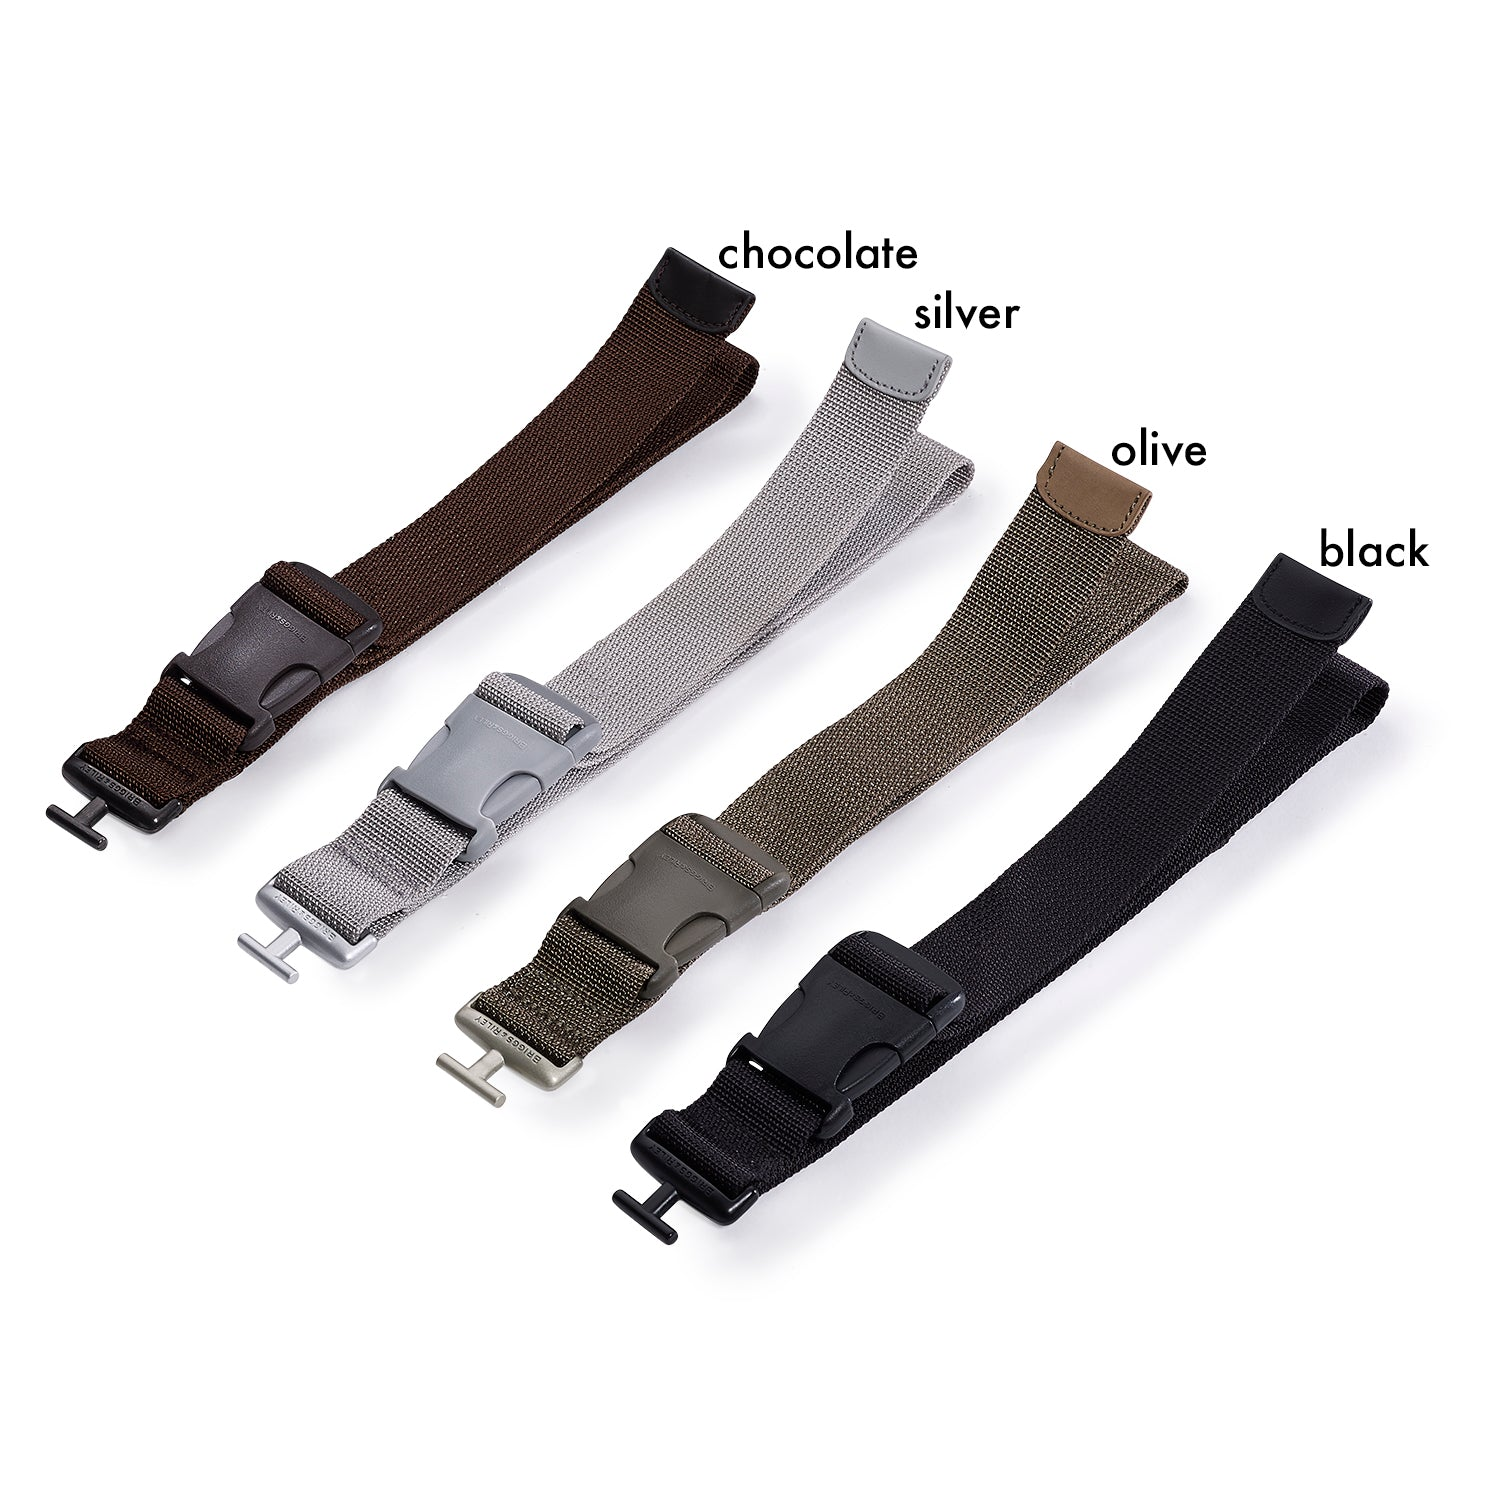 Baseline Smartlink Strap For Discontinued Styles